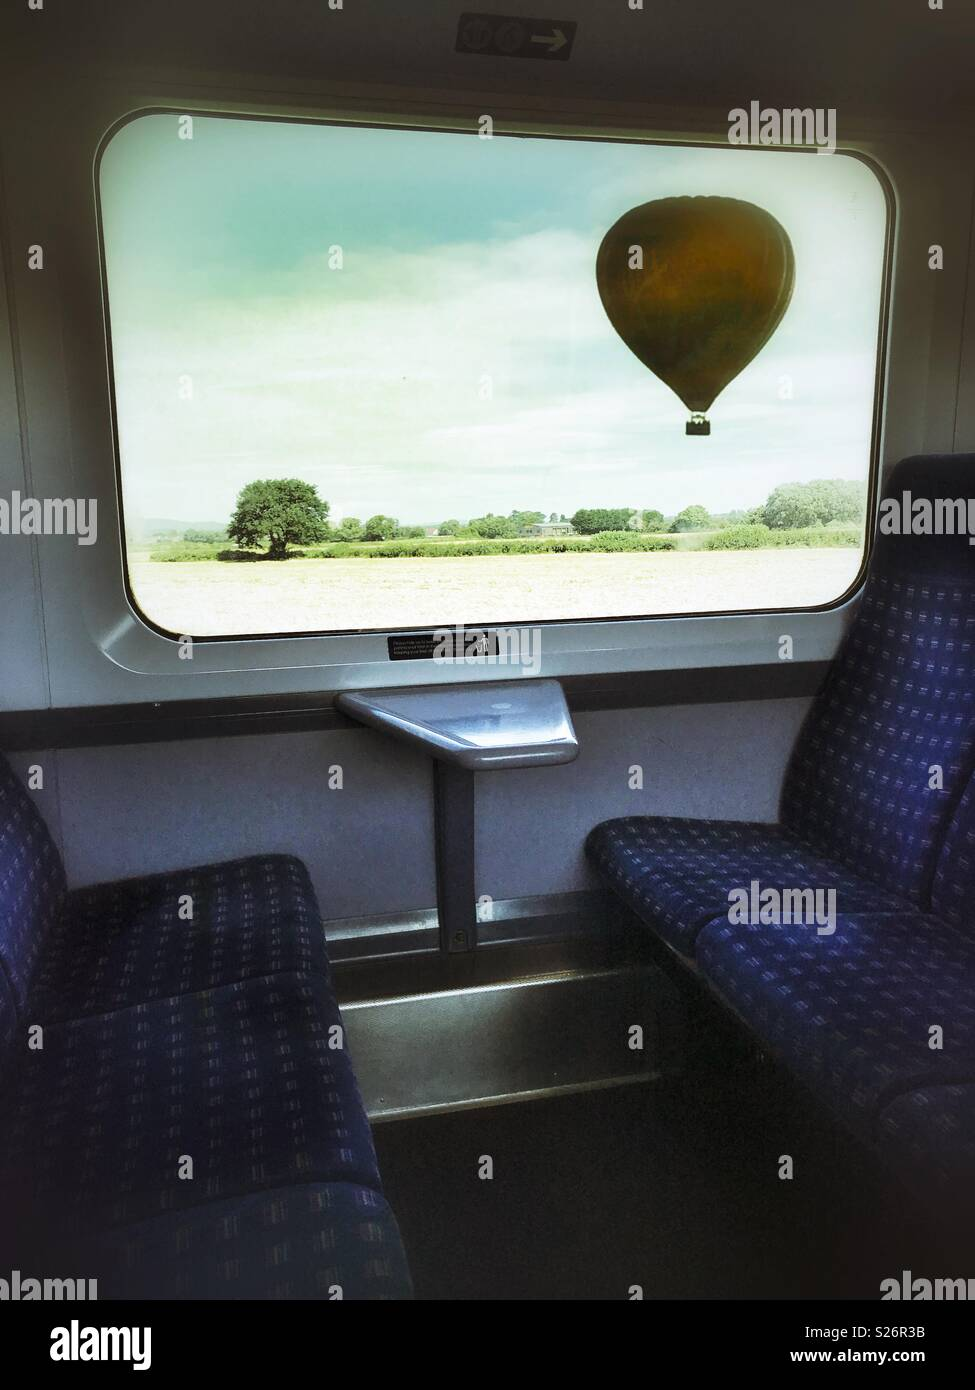 A hot air balloon from the window of an empty train. - Stock Image